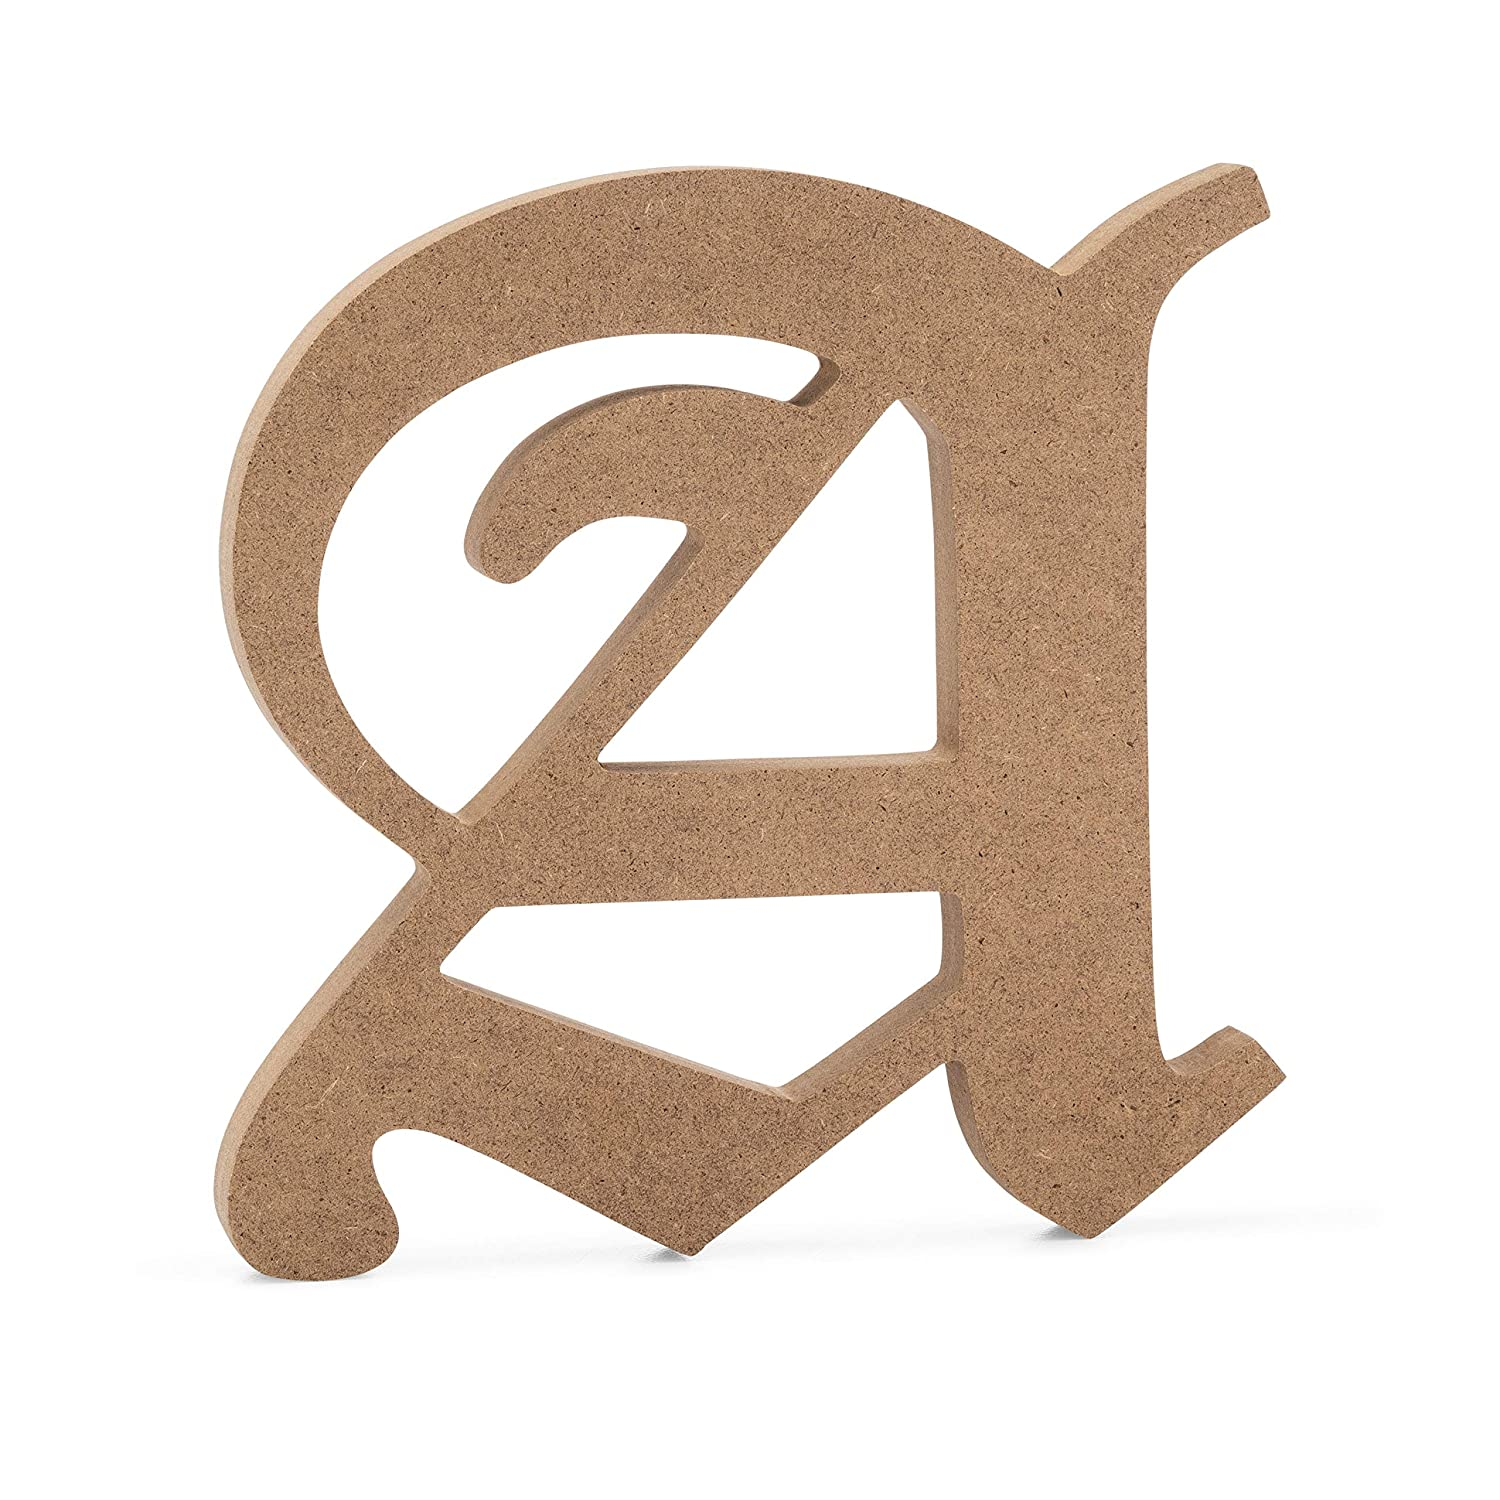 6 Old English Wooden Letter E 6 inch, E JoePauls Crafts Premium MDF Wood Wall Letters